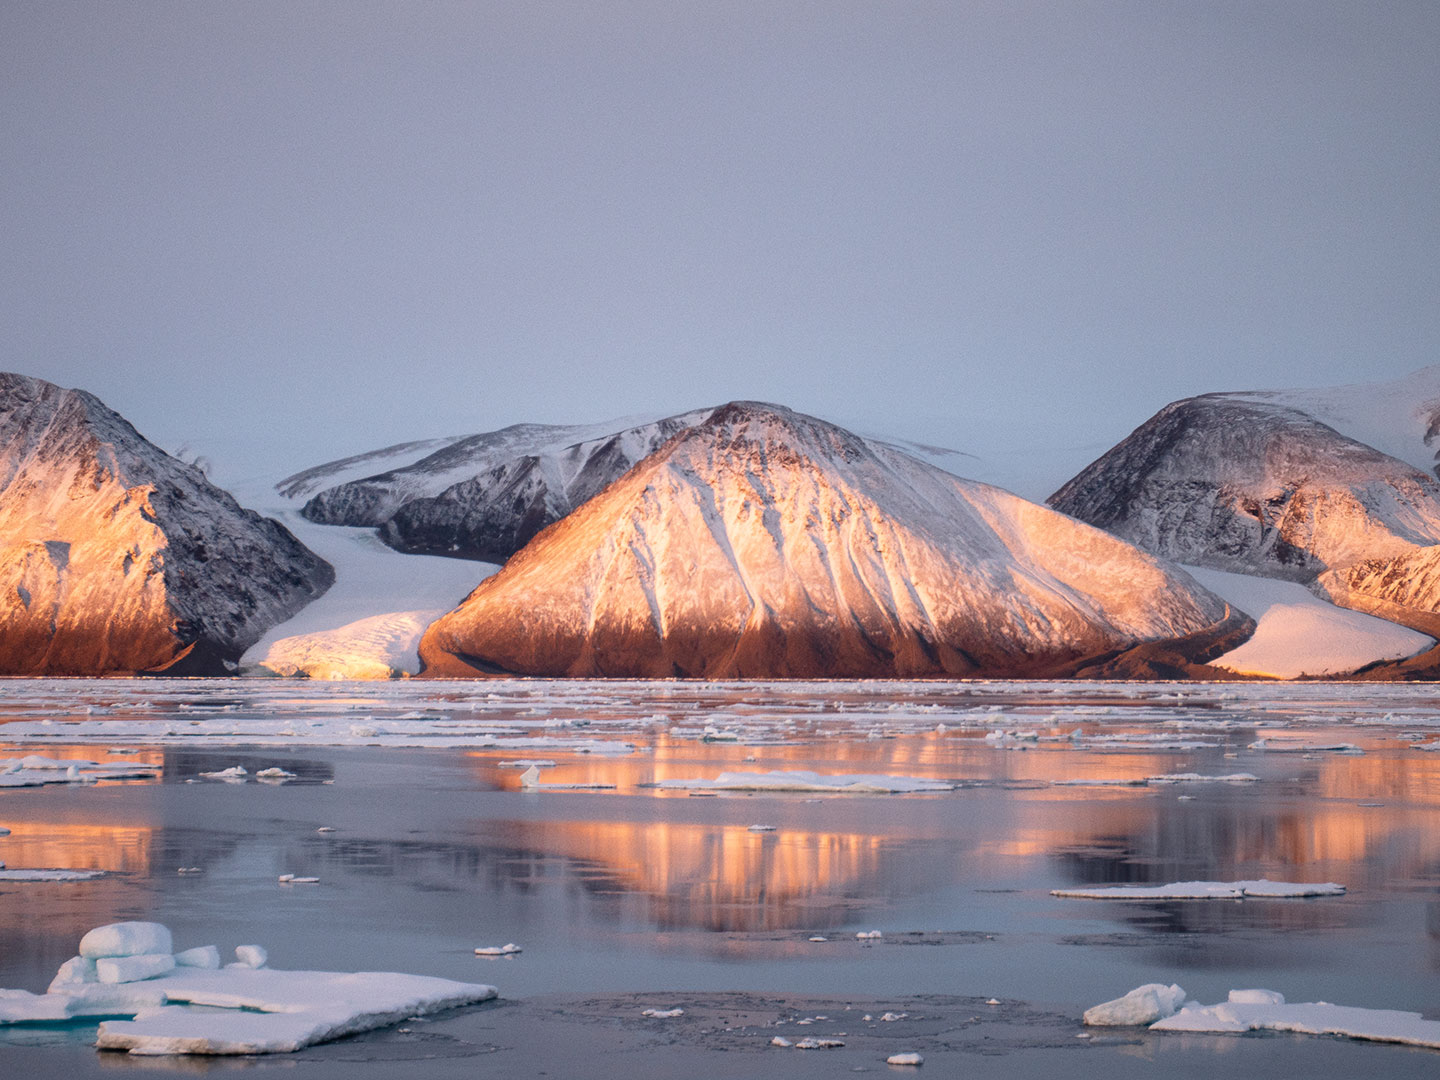 Stunning views of snow- and ice-covered landscapes are highlights of any cruise to Nunavut